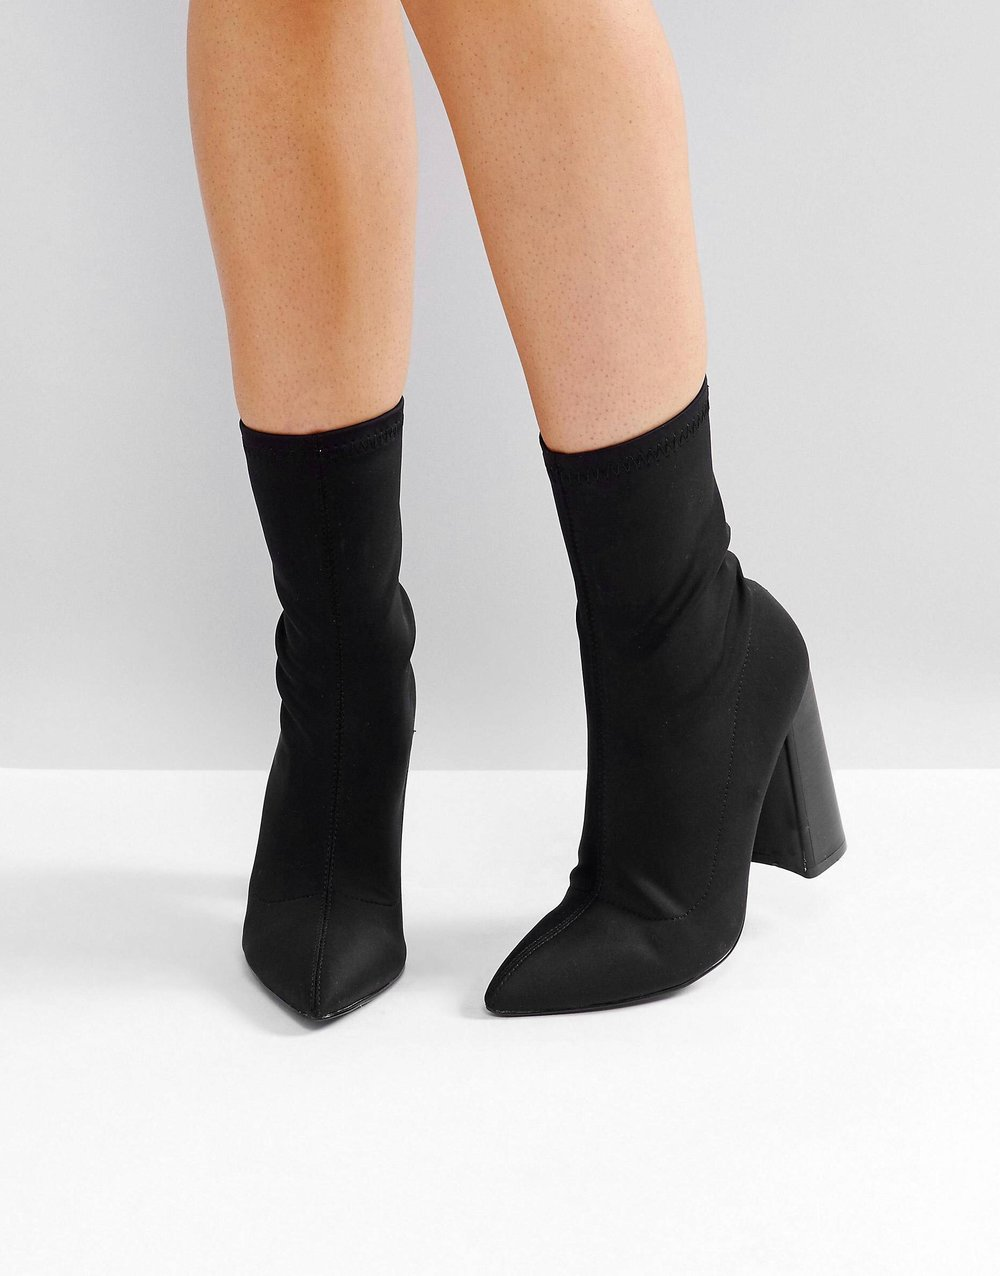 Black Sock Boots - Sock boots are a really cute and versatile trend! Wear with skinny jeans, with a skirt or dress, or peeking out from wide-legged cropped pants.